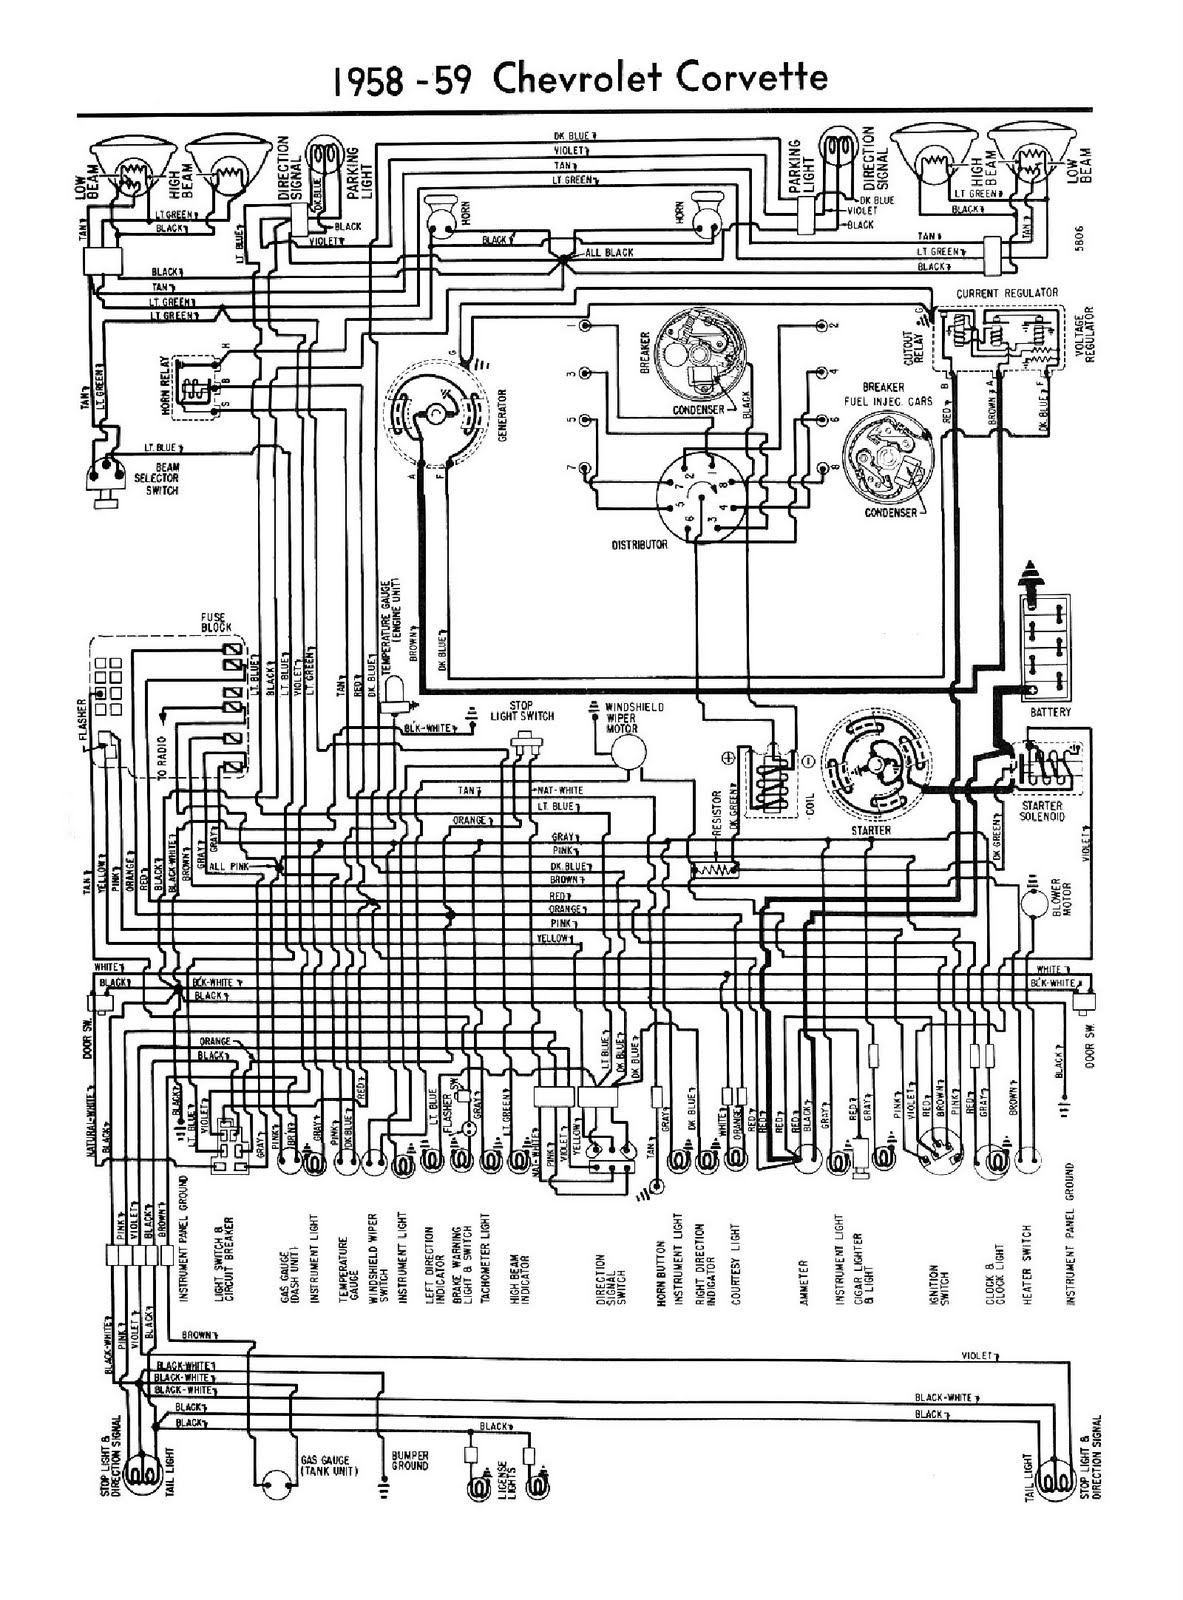 1958 1959 chevrolet corvette wiring diagram 1972 corvette dash wire harness guide with fuse box with air 58 corvette wiring diagram at soozxer.org